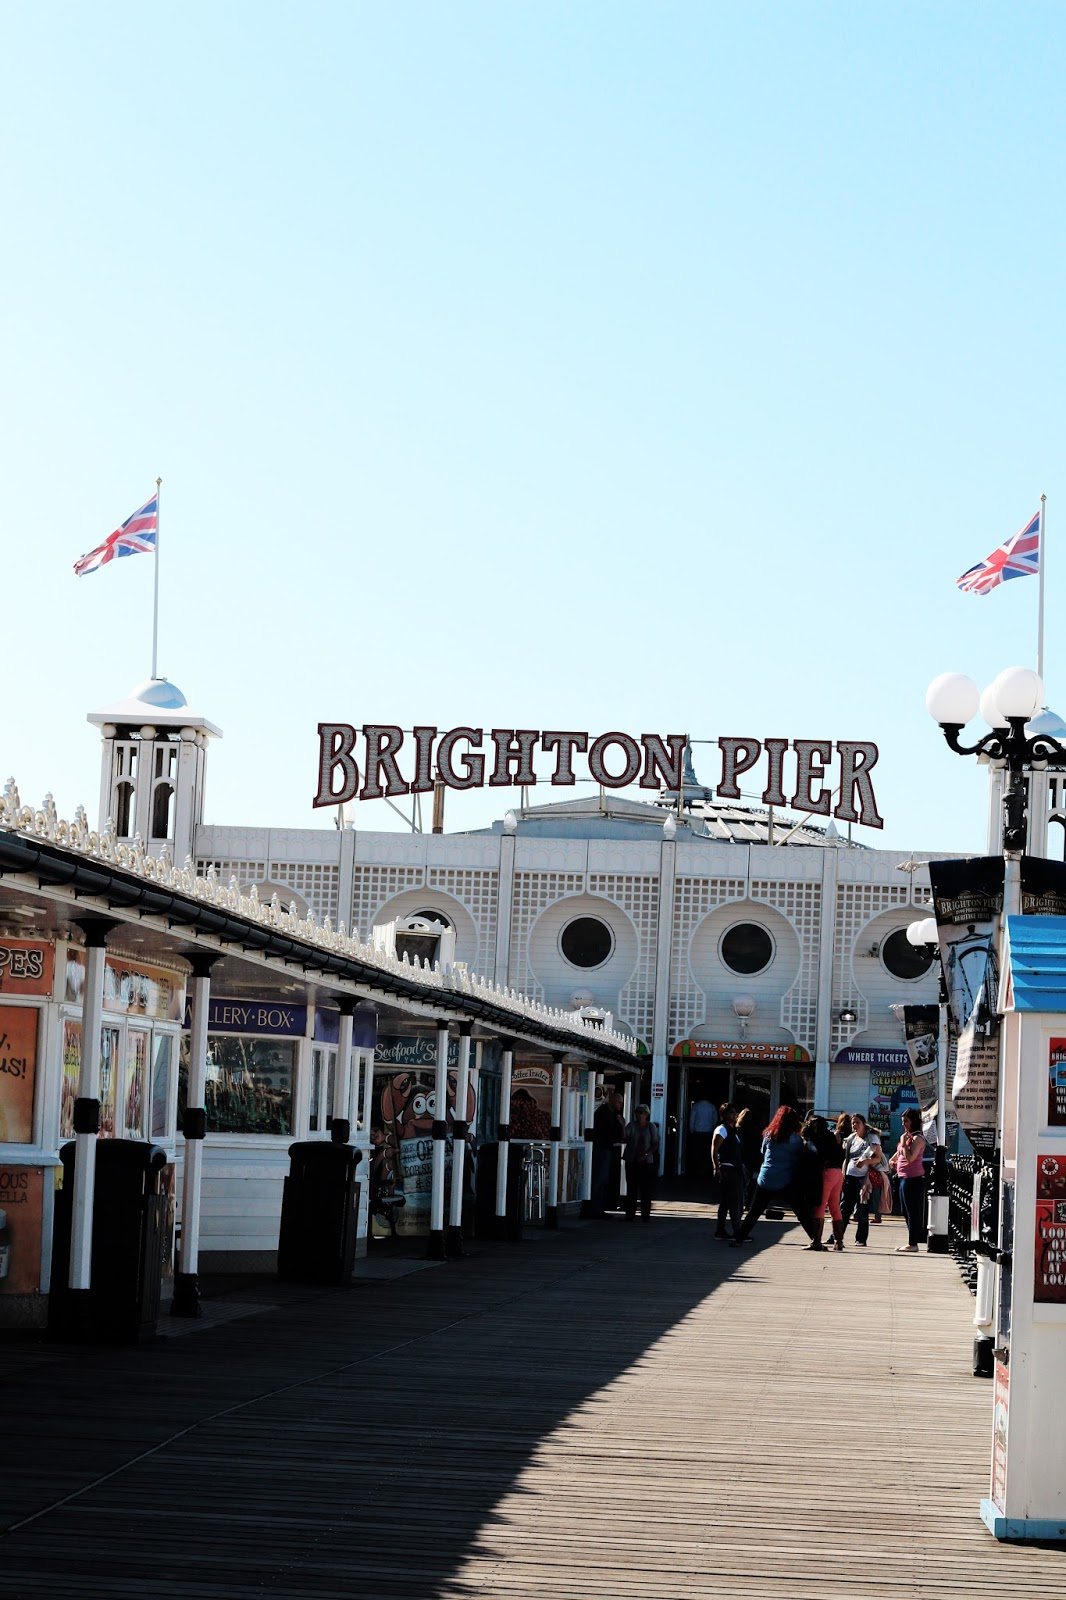 planning a day trip to brighton? click through for a list of things to do and see in the seaside city